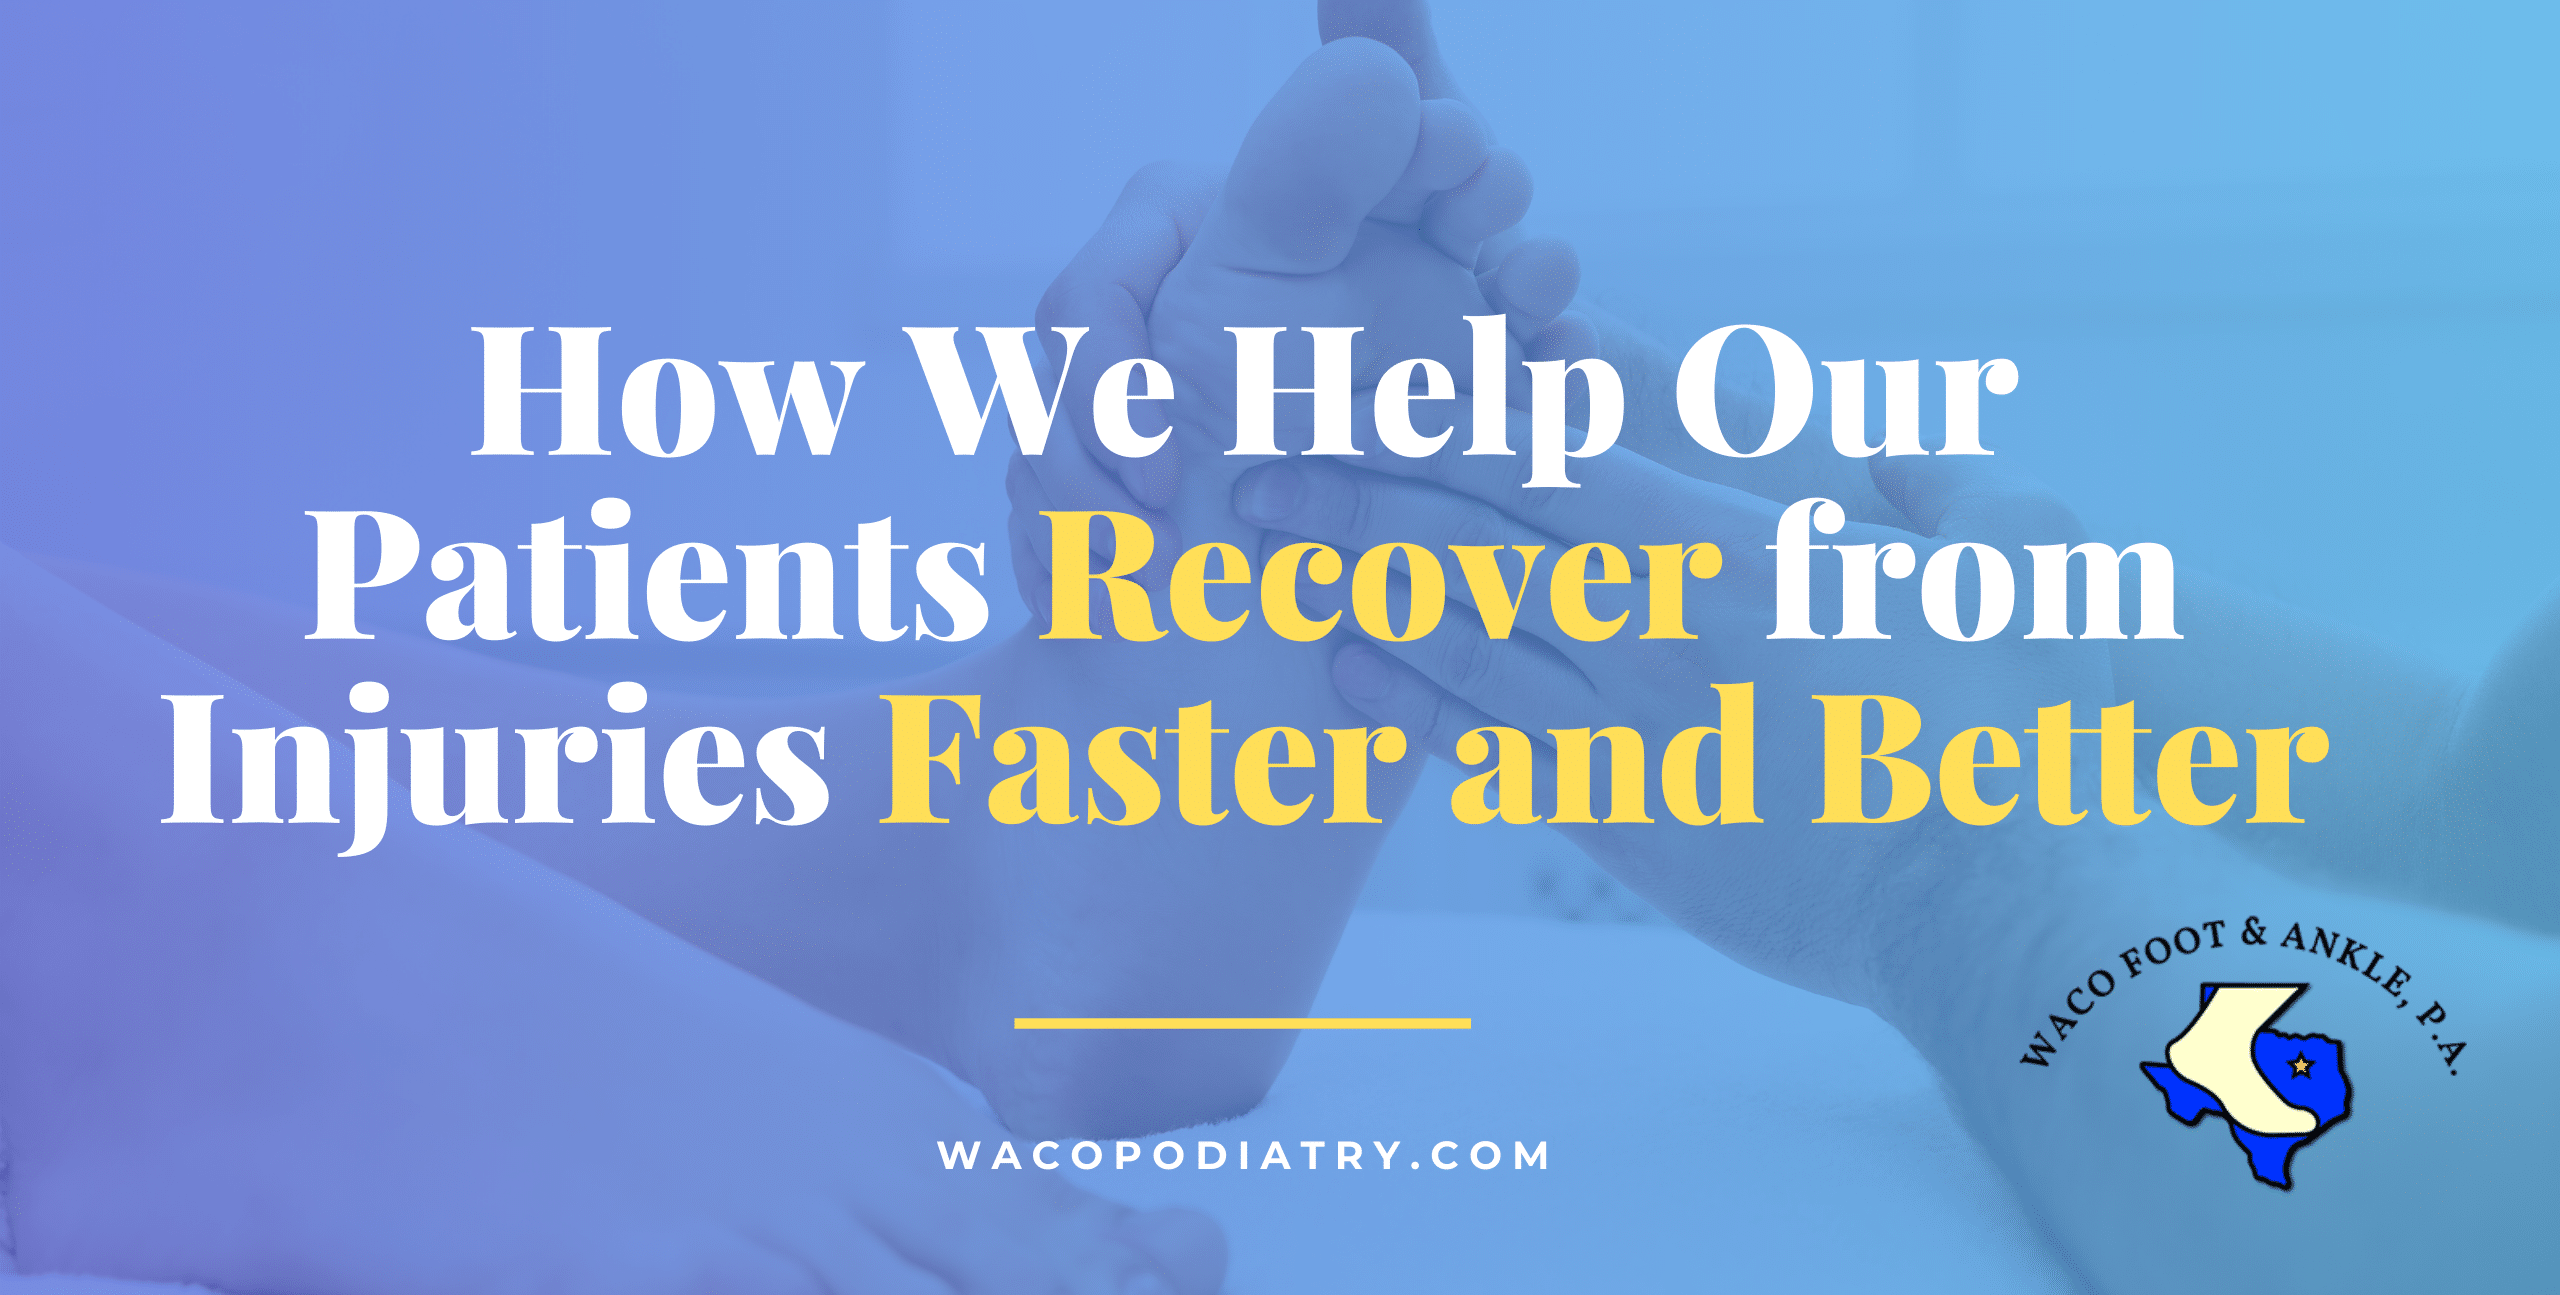 How We Help Our Patients Recover from Injuries Faster and Better